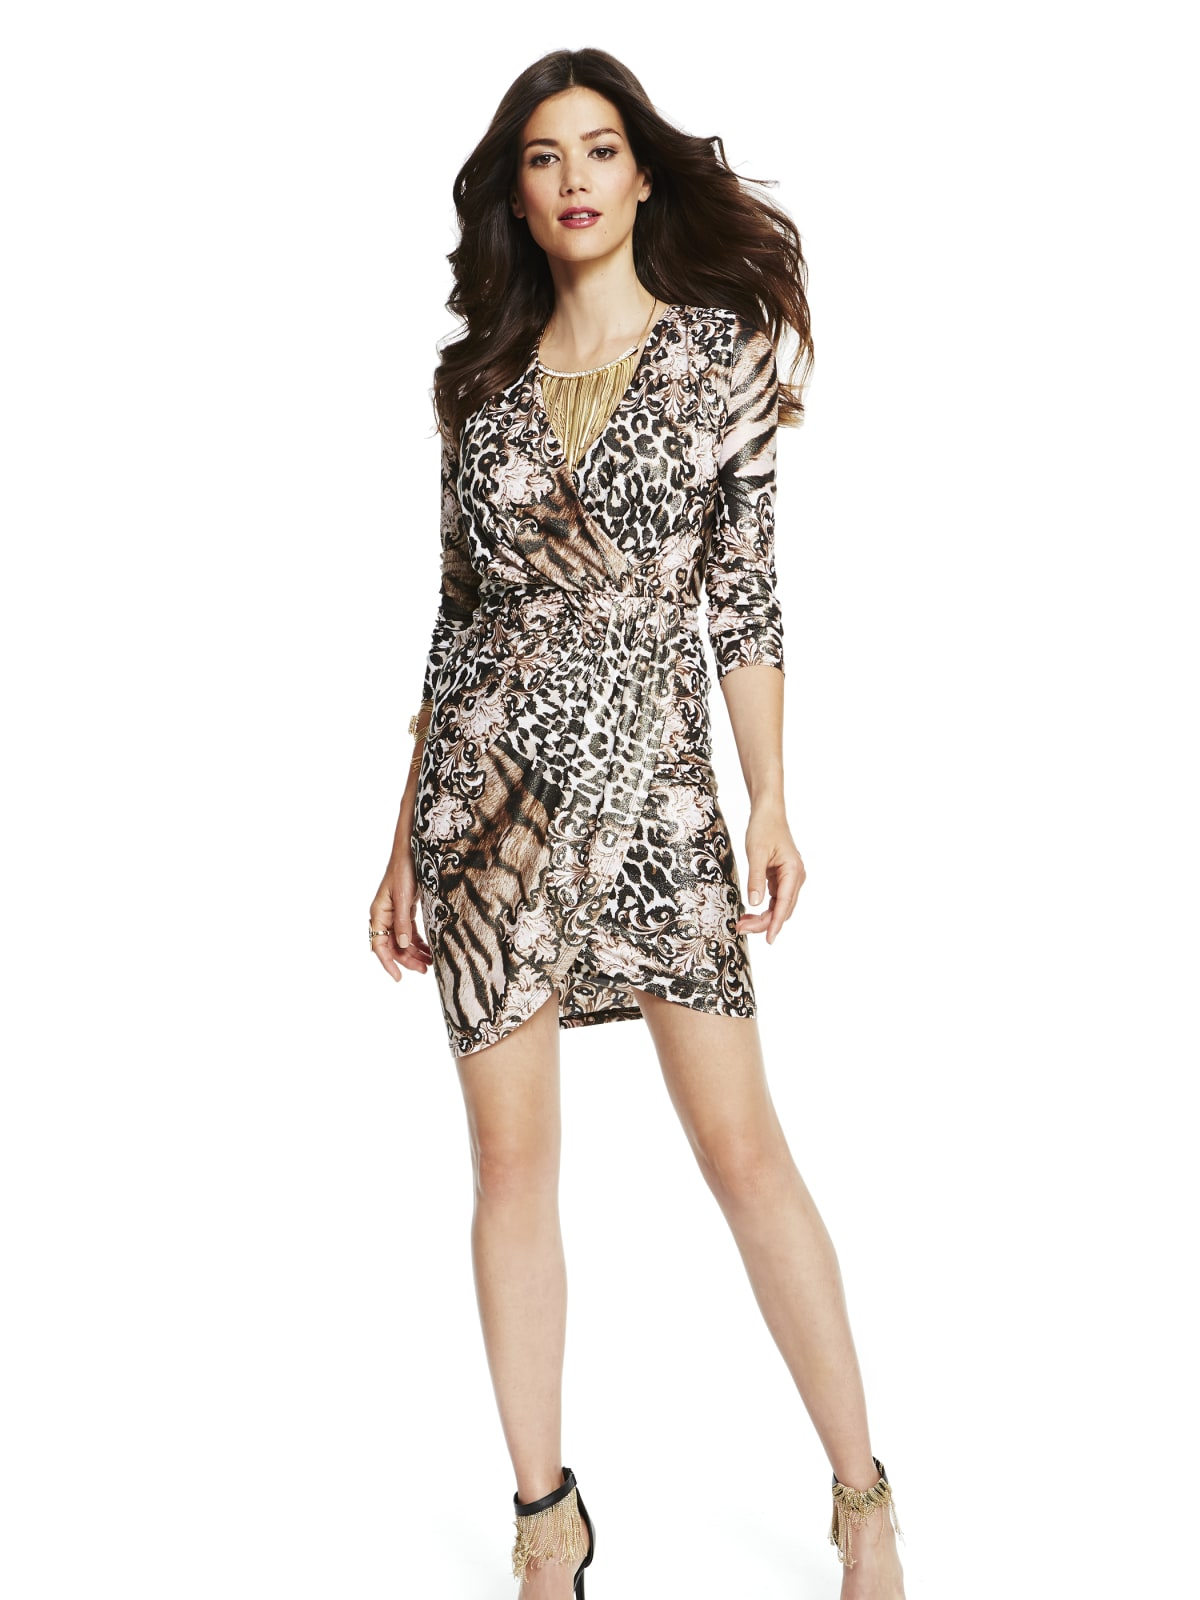 Dress from the Thalia collection at Macy's